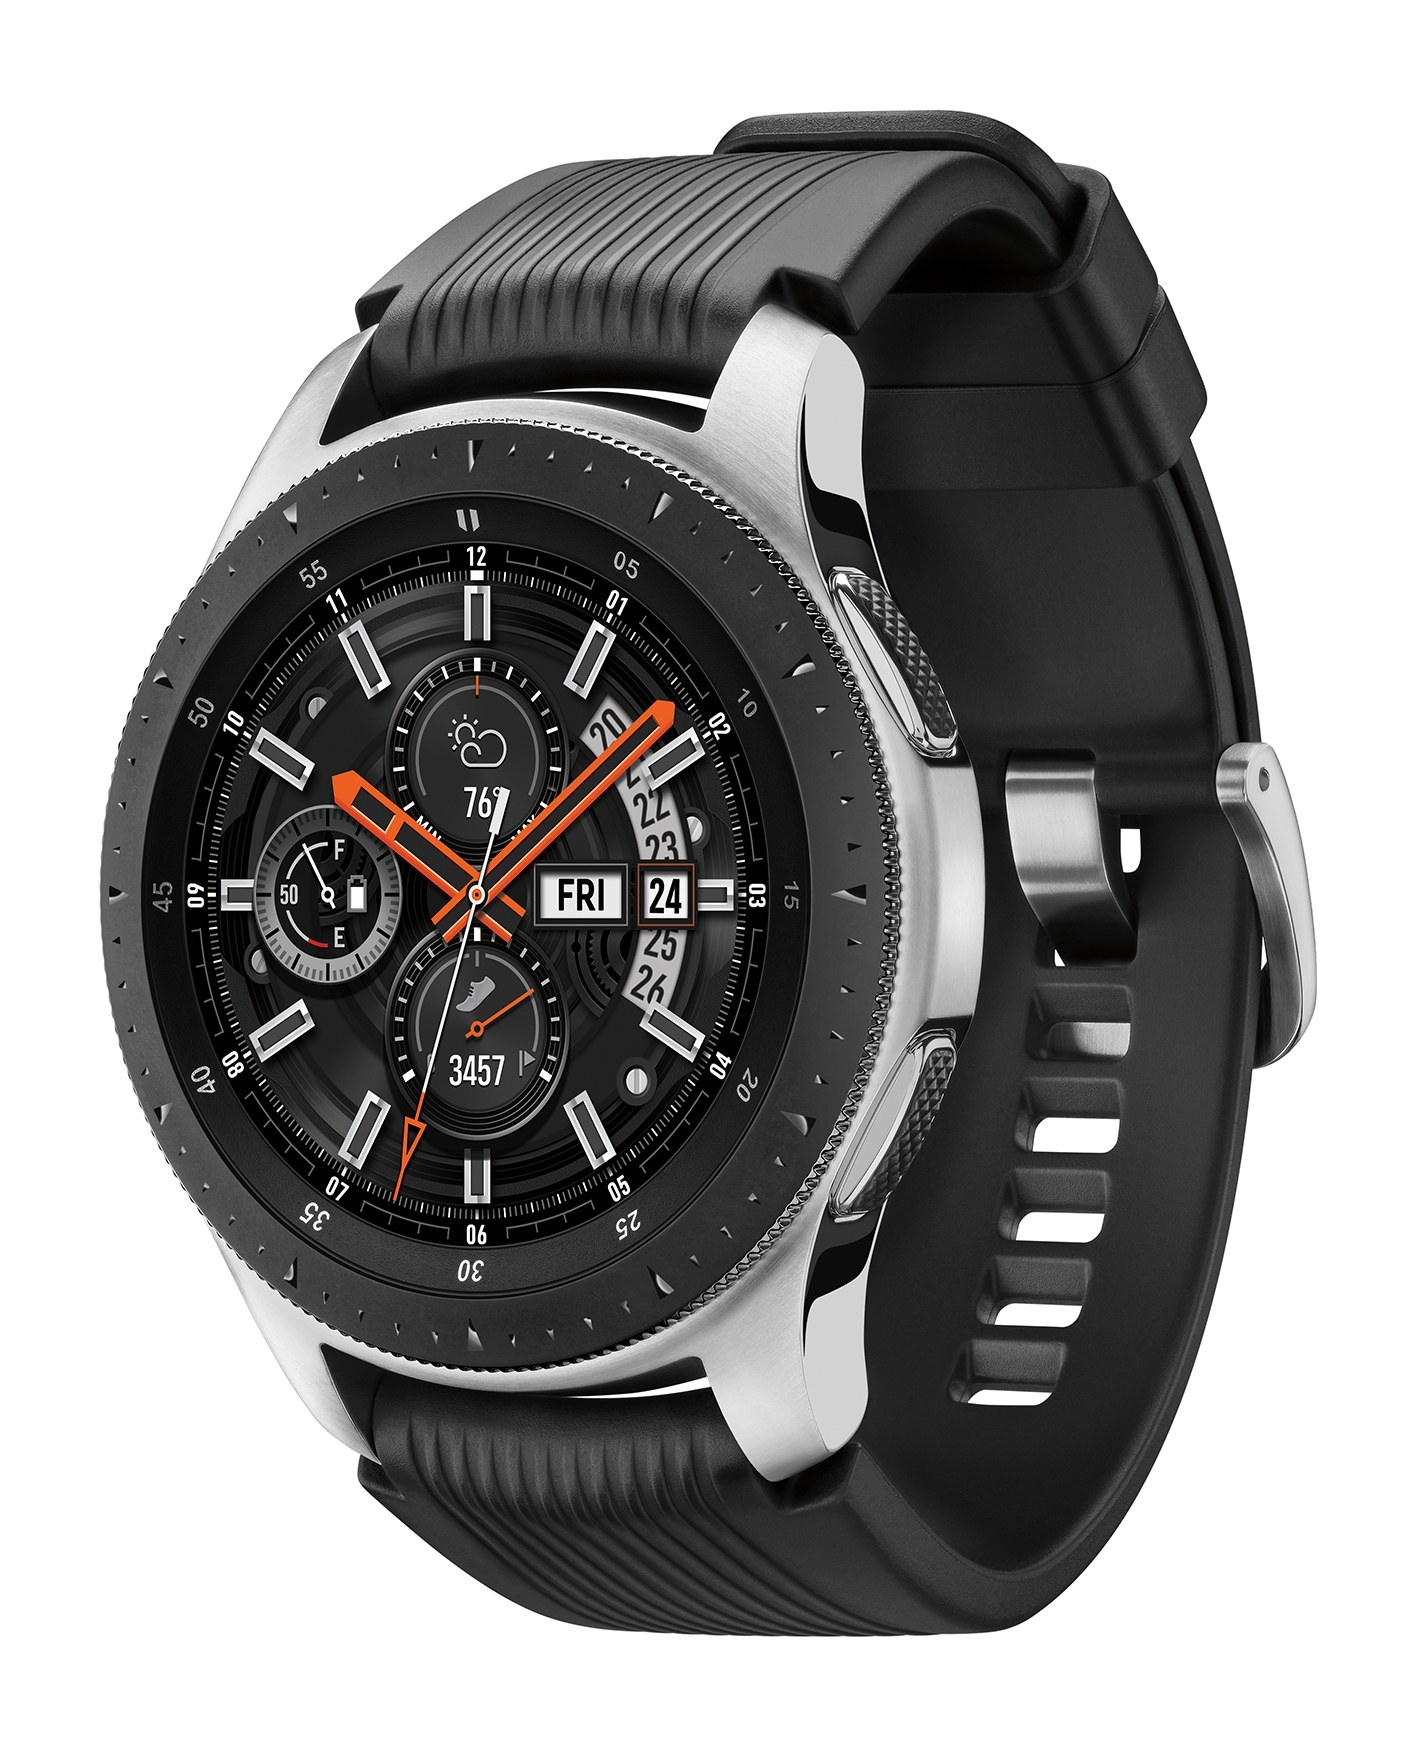 The black and silver watch